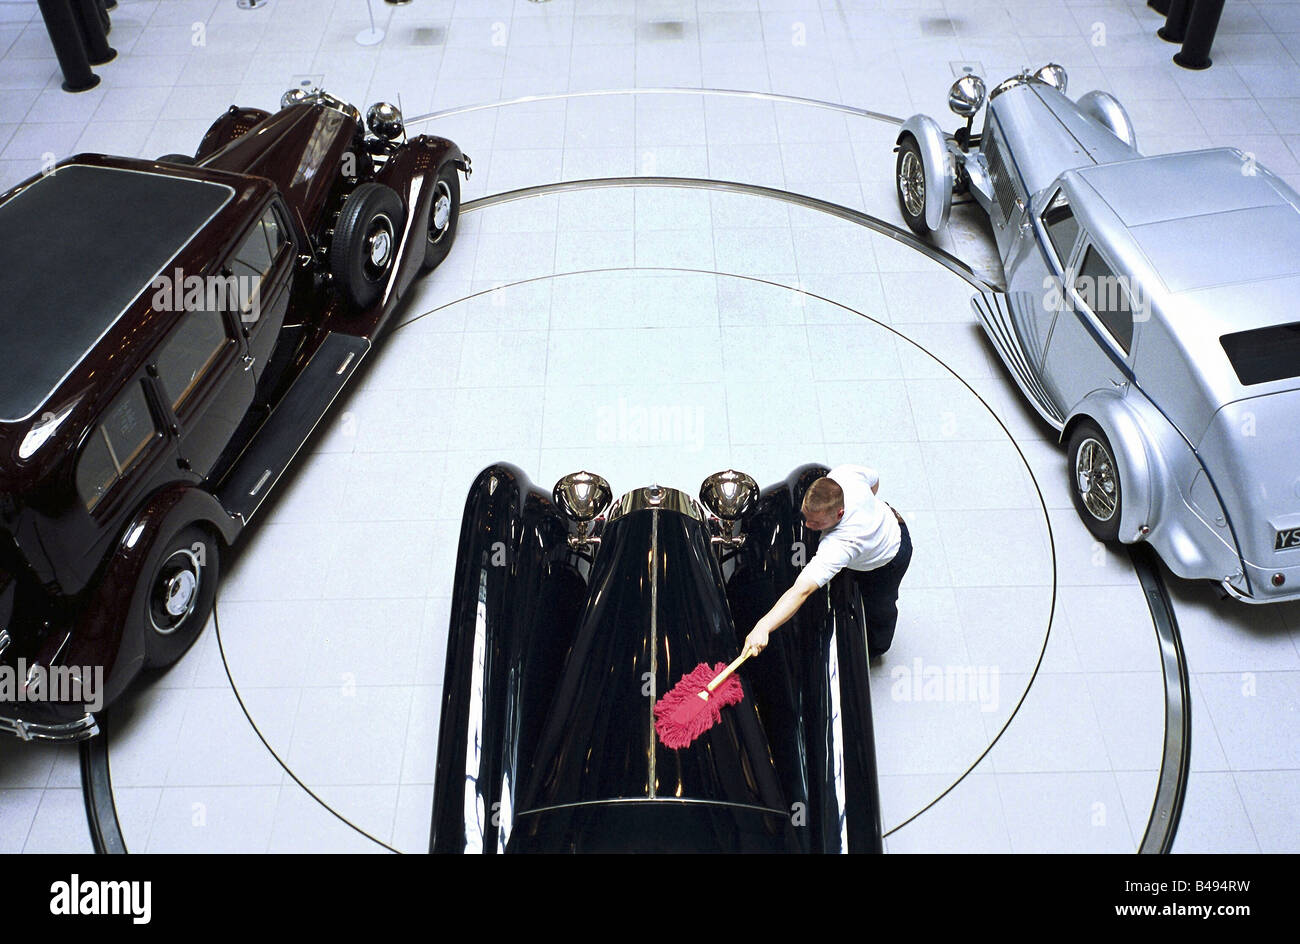 Bugatti Oldtimers at a car showroom, Berlin, Germany - Stock Image